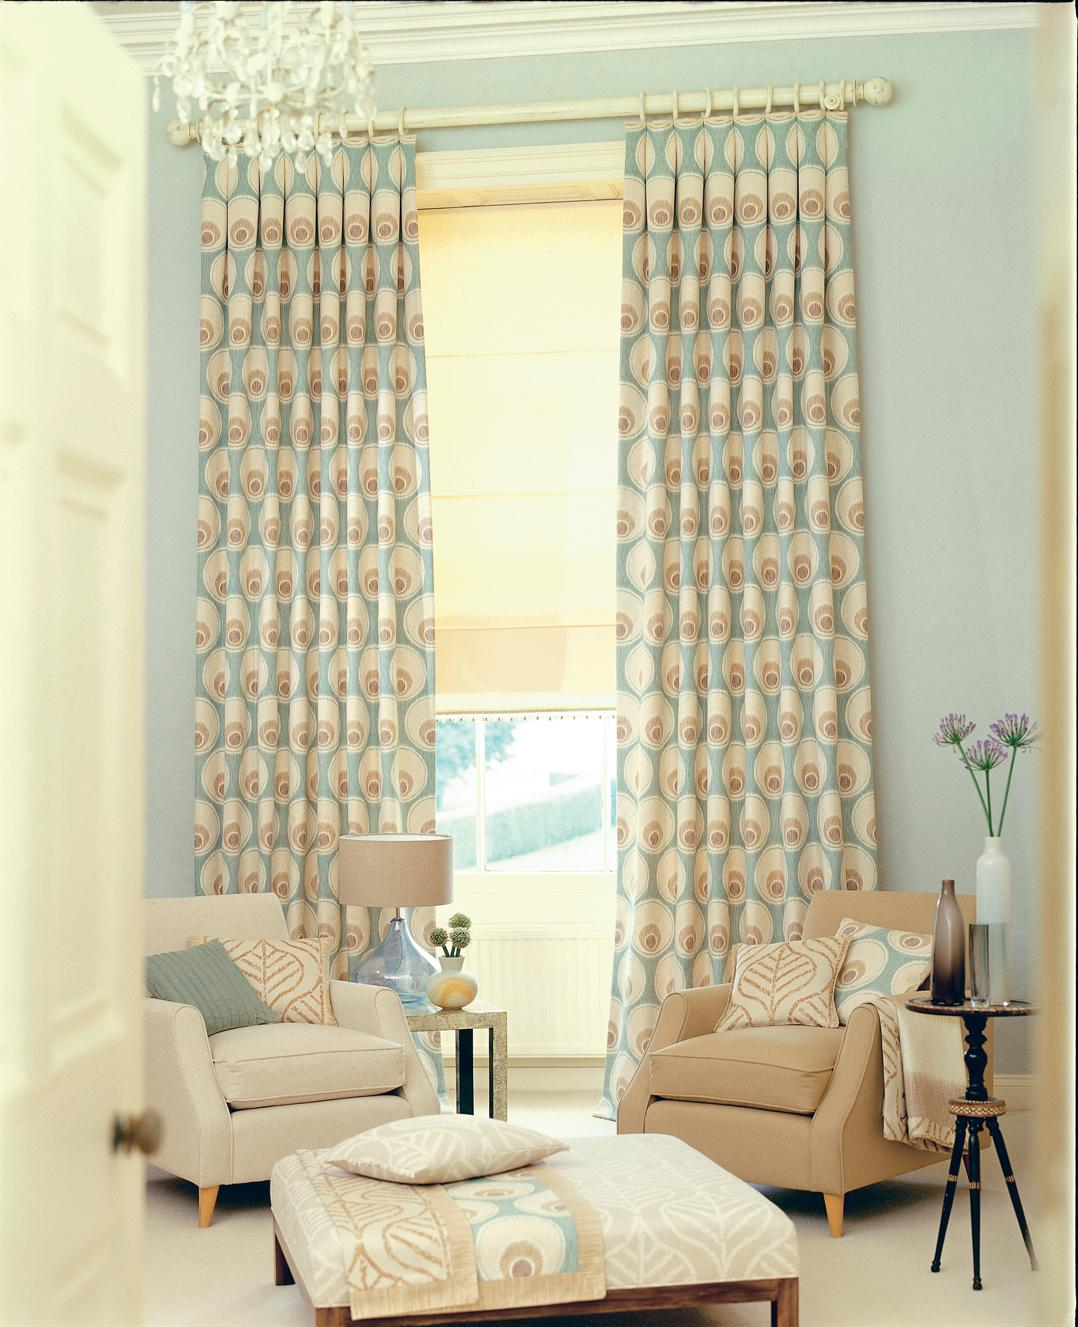 Curtain Designs For Windows In Changing The Atmosphere Of